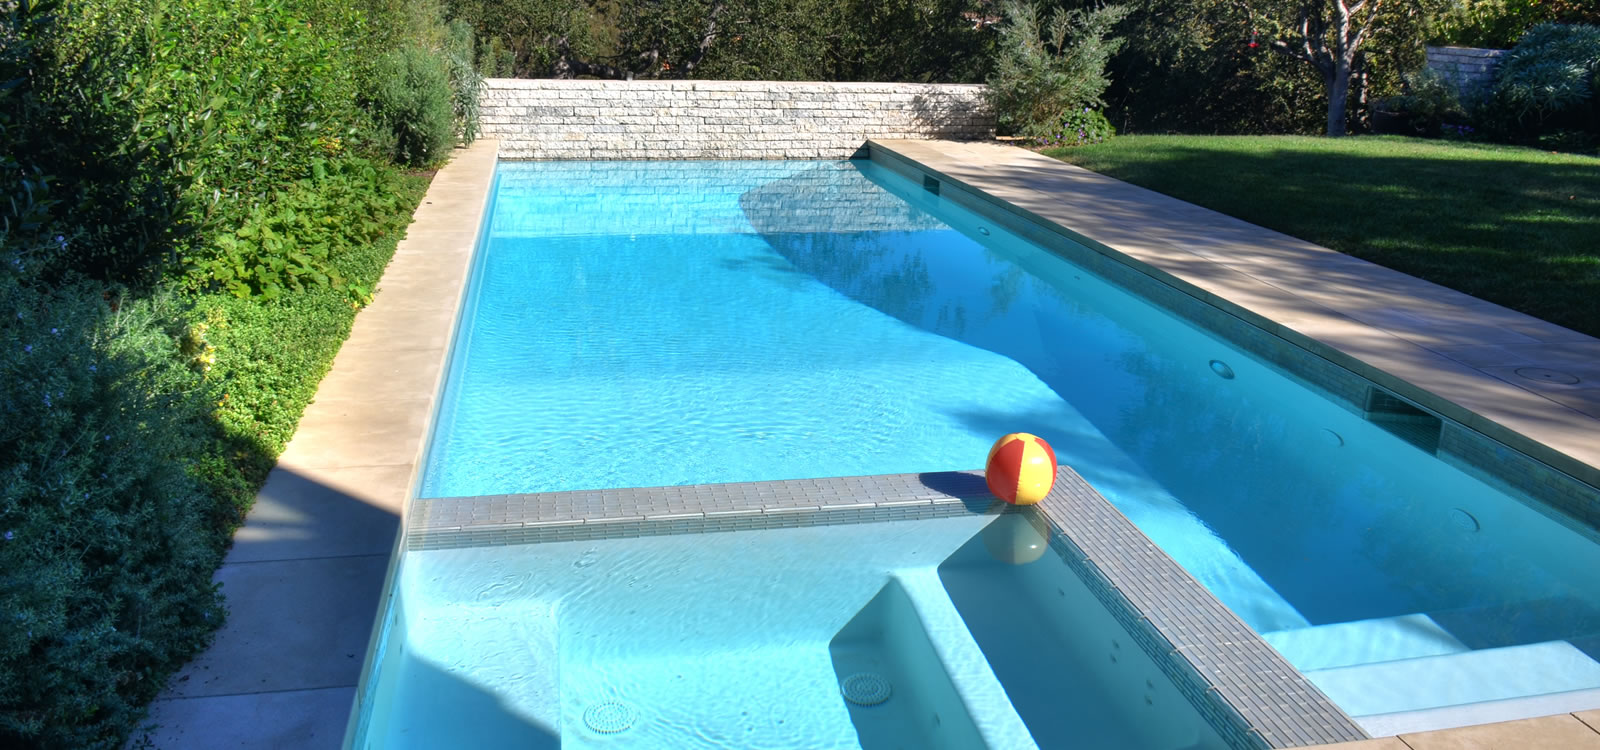 Los Angeles Pool & Spa Design with BBQ Island and Fire Feature by ...